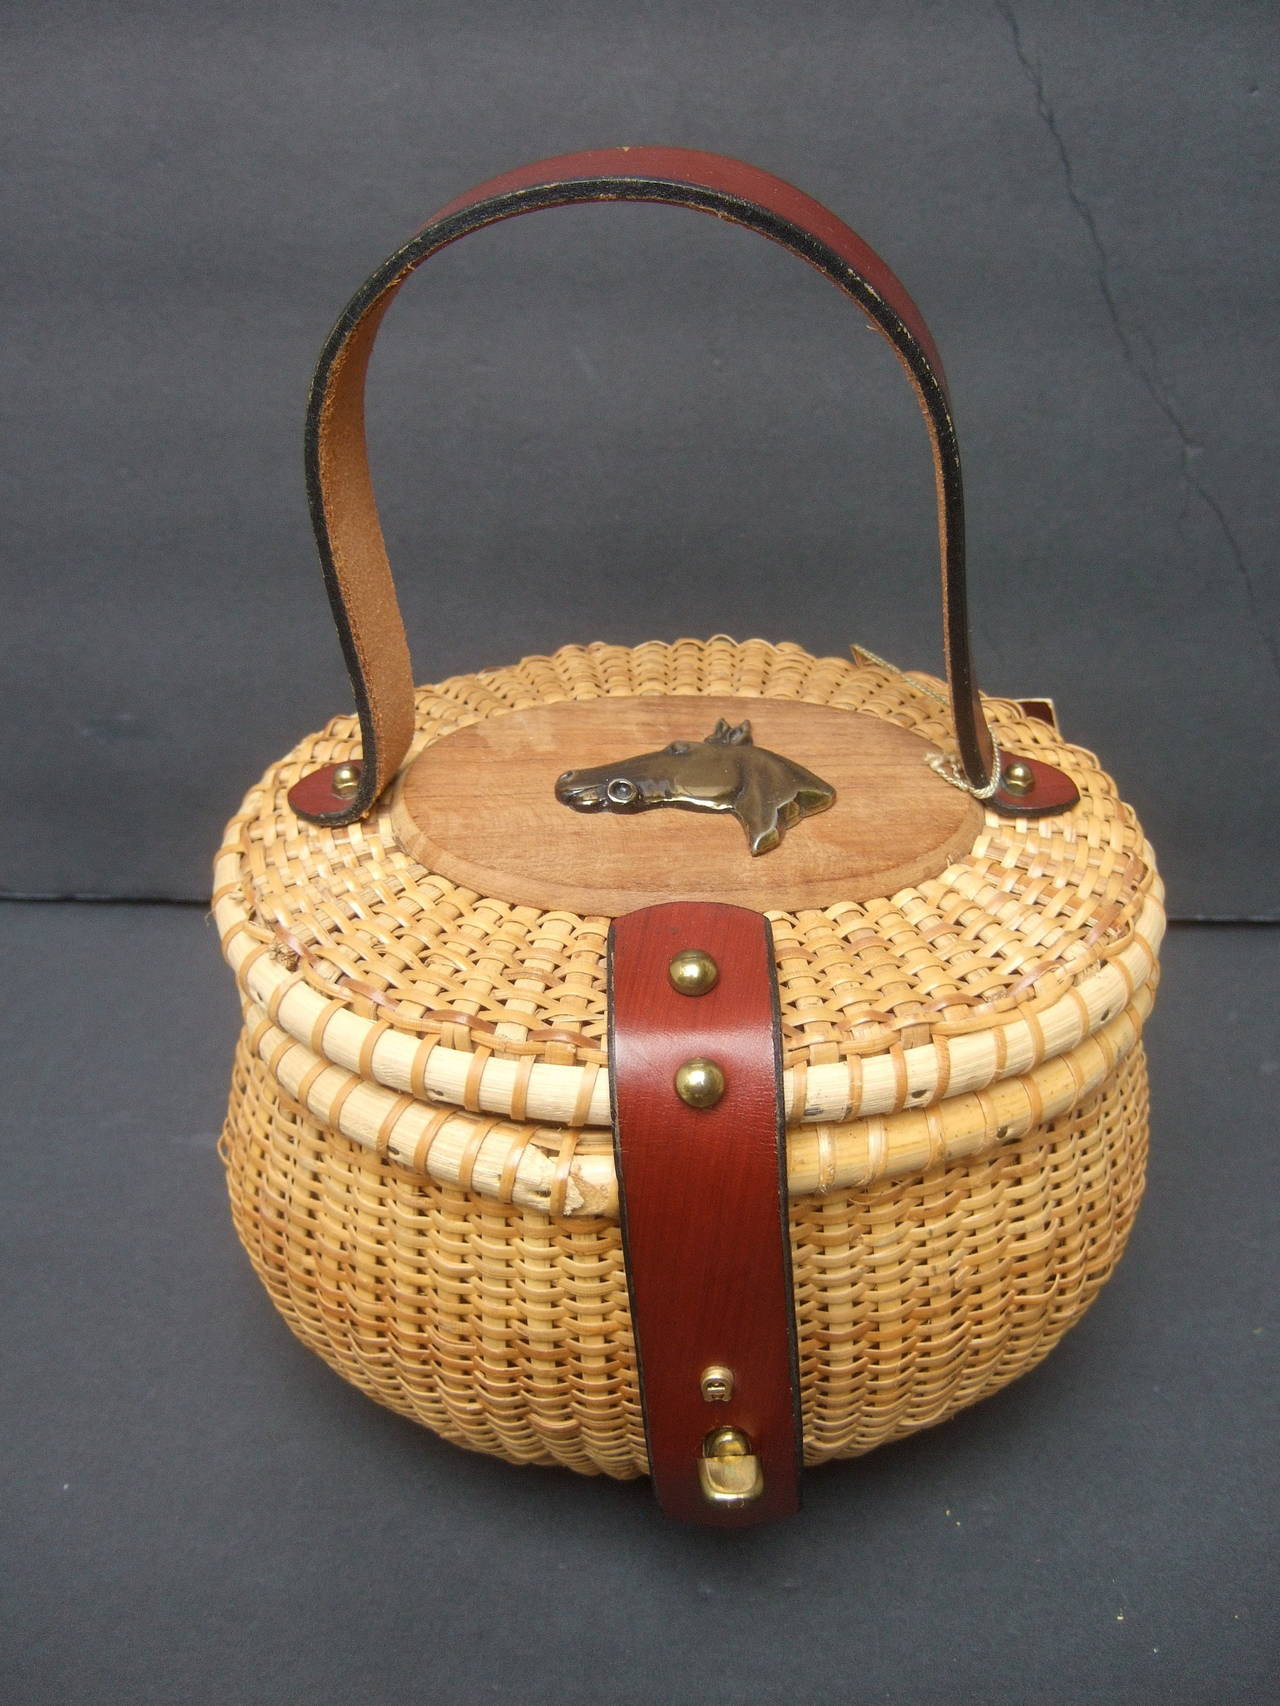 Oval Wicker Basket Equestrian Theme Handbag c 1970s For Sale 1